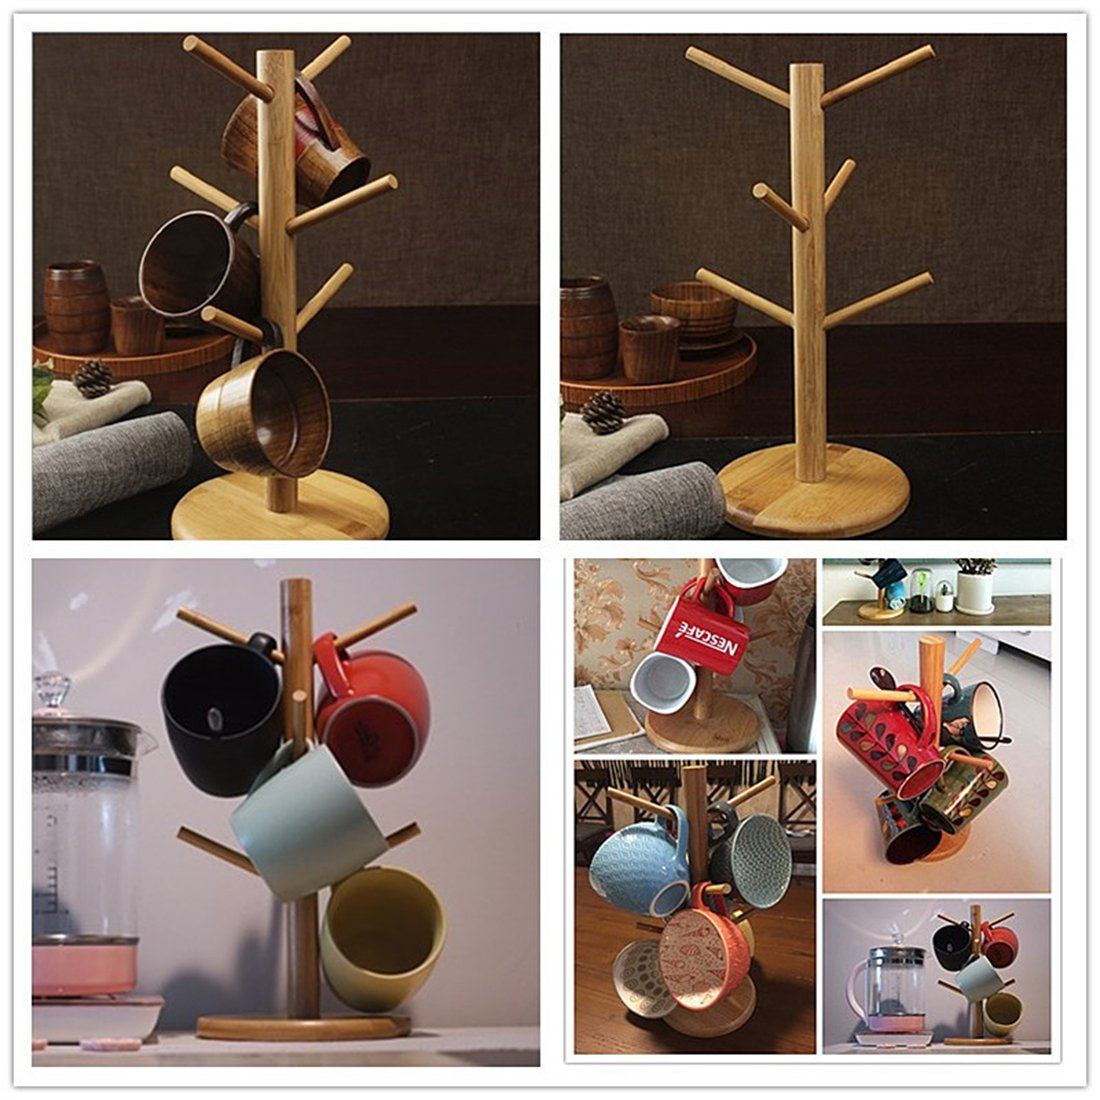 Ahyuan Bamboo Mug Rack Tree Coffee Tea Cup Organizer Hanger Holder with 6 Hooks Removable Bamboo Mug Stand AHBAMUGRACK06R